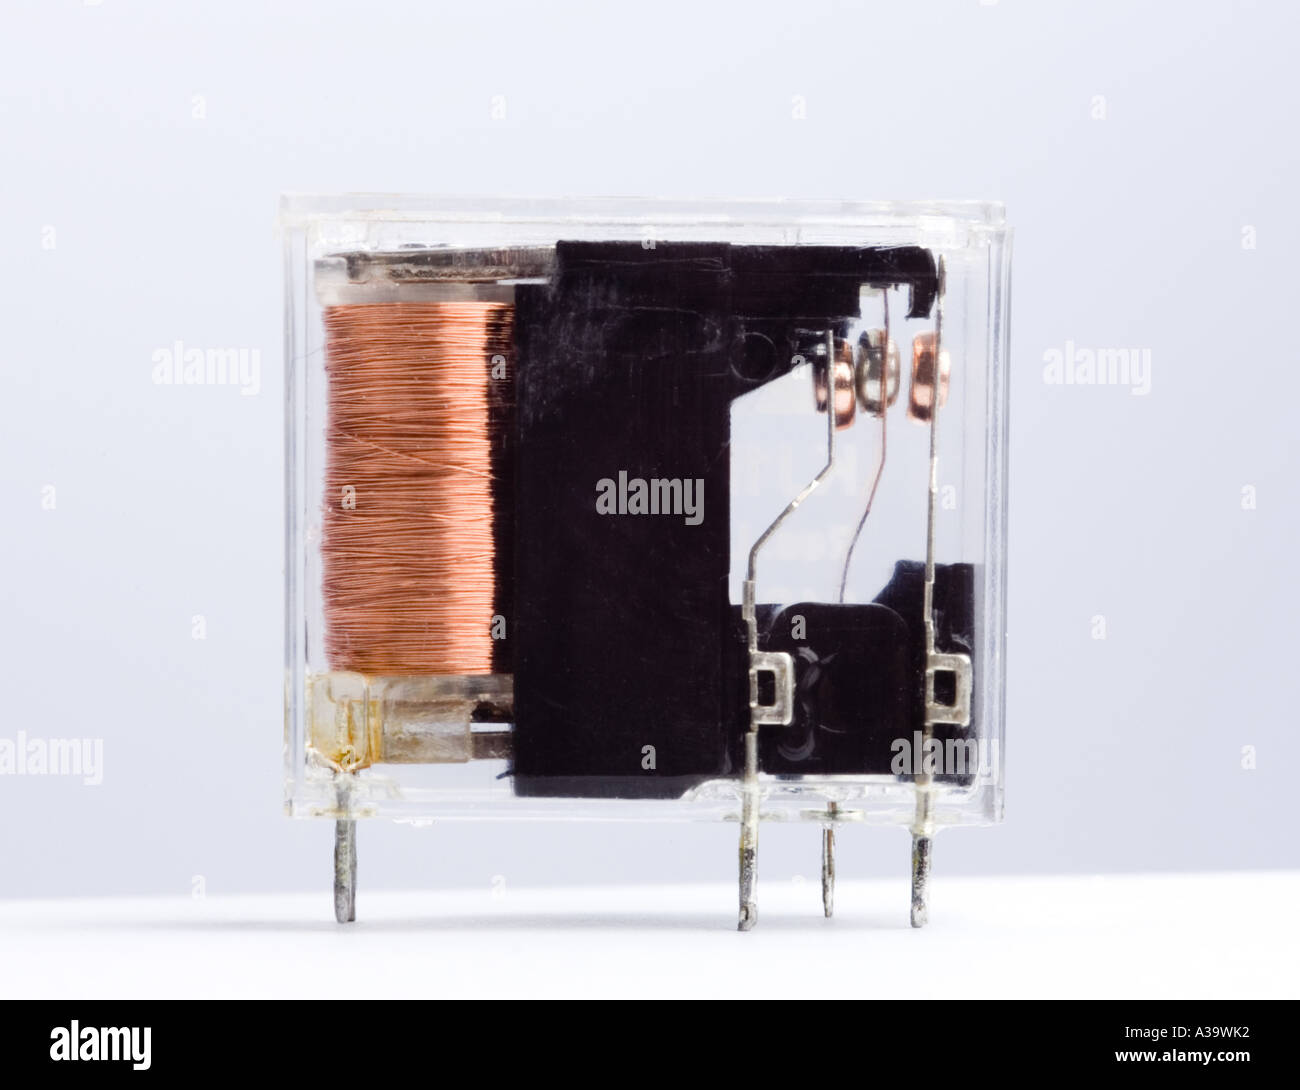 Electric Relay Stock Photos Images Page 2 Electronic Brick Electrical Image